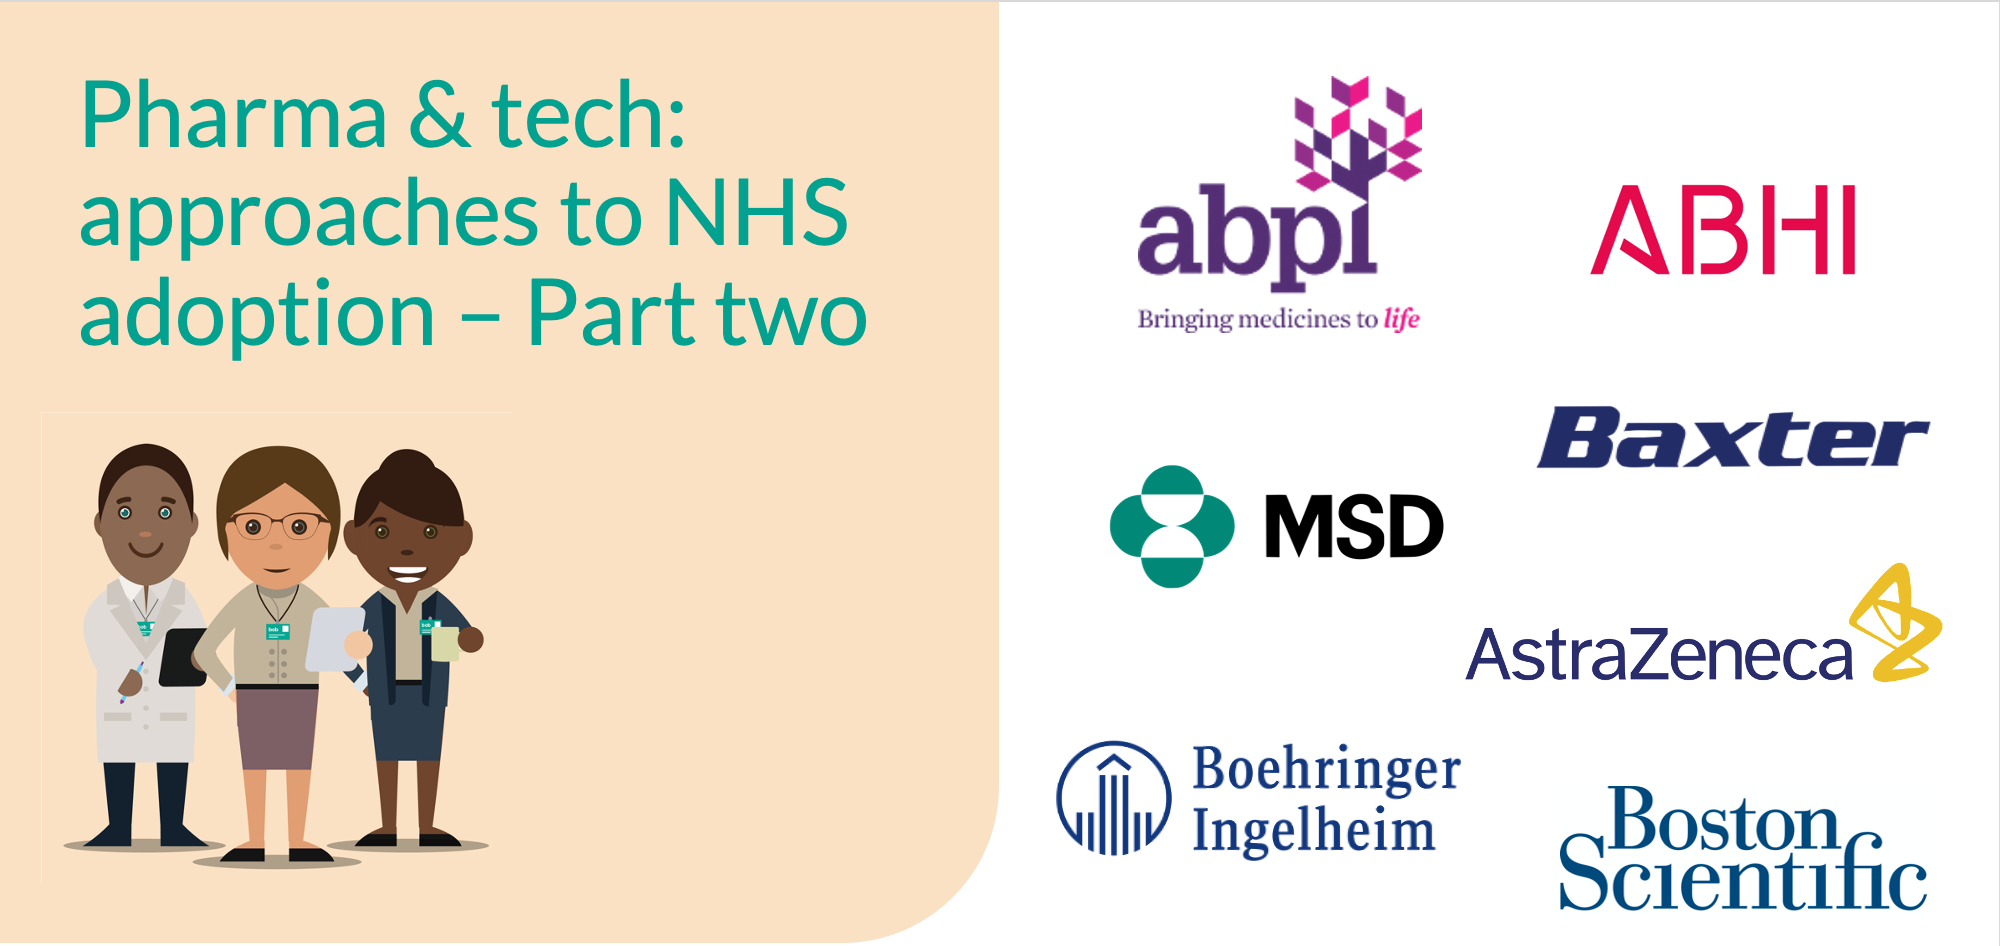 Pharma and tech: approaches to NHS adoption and mobilising partnership - Part two